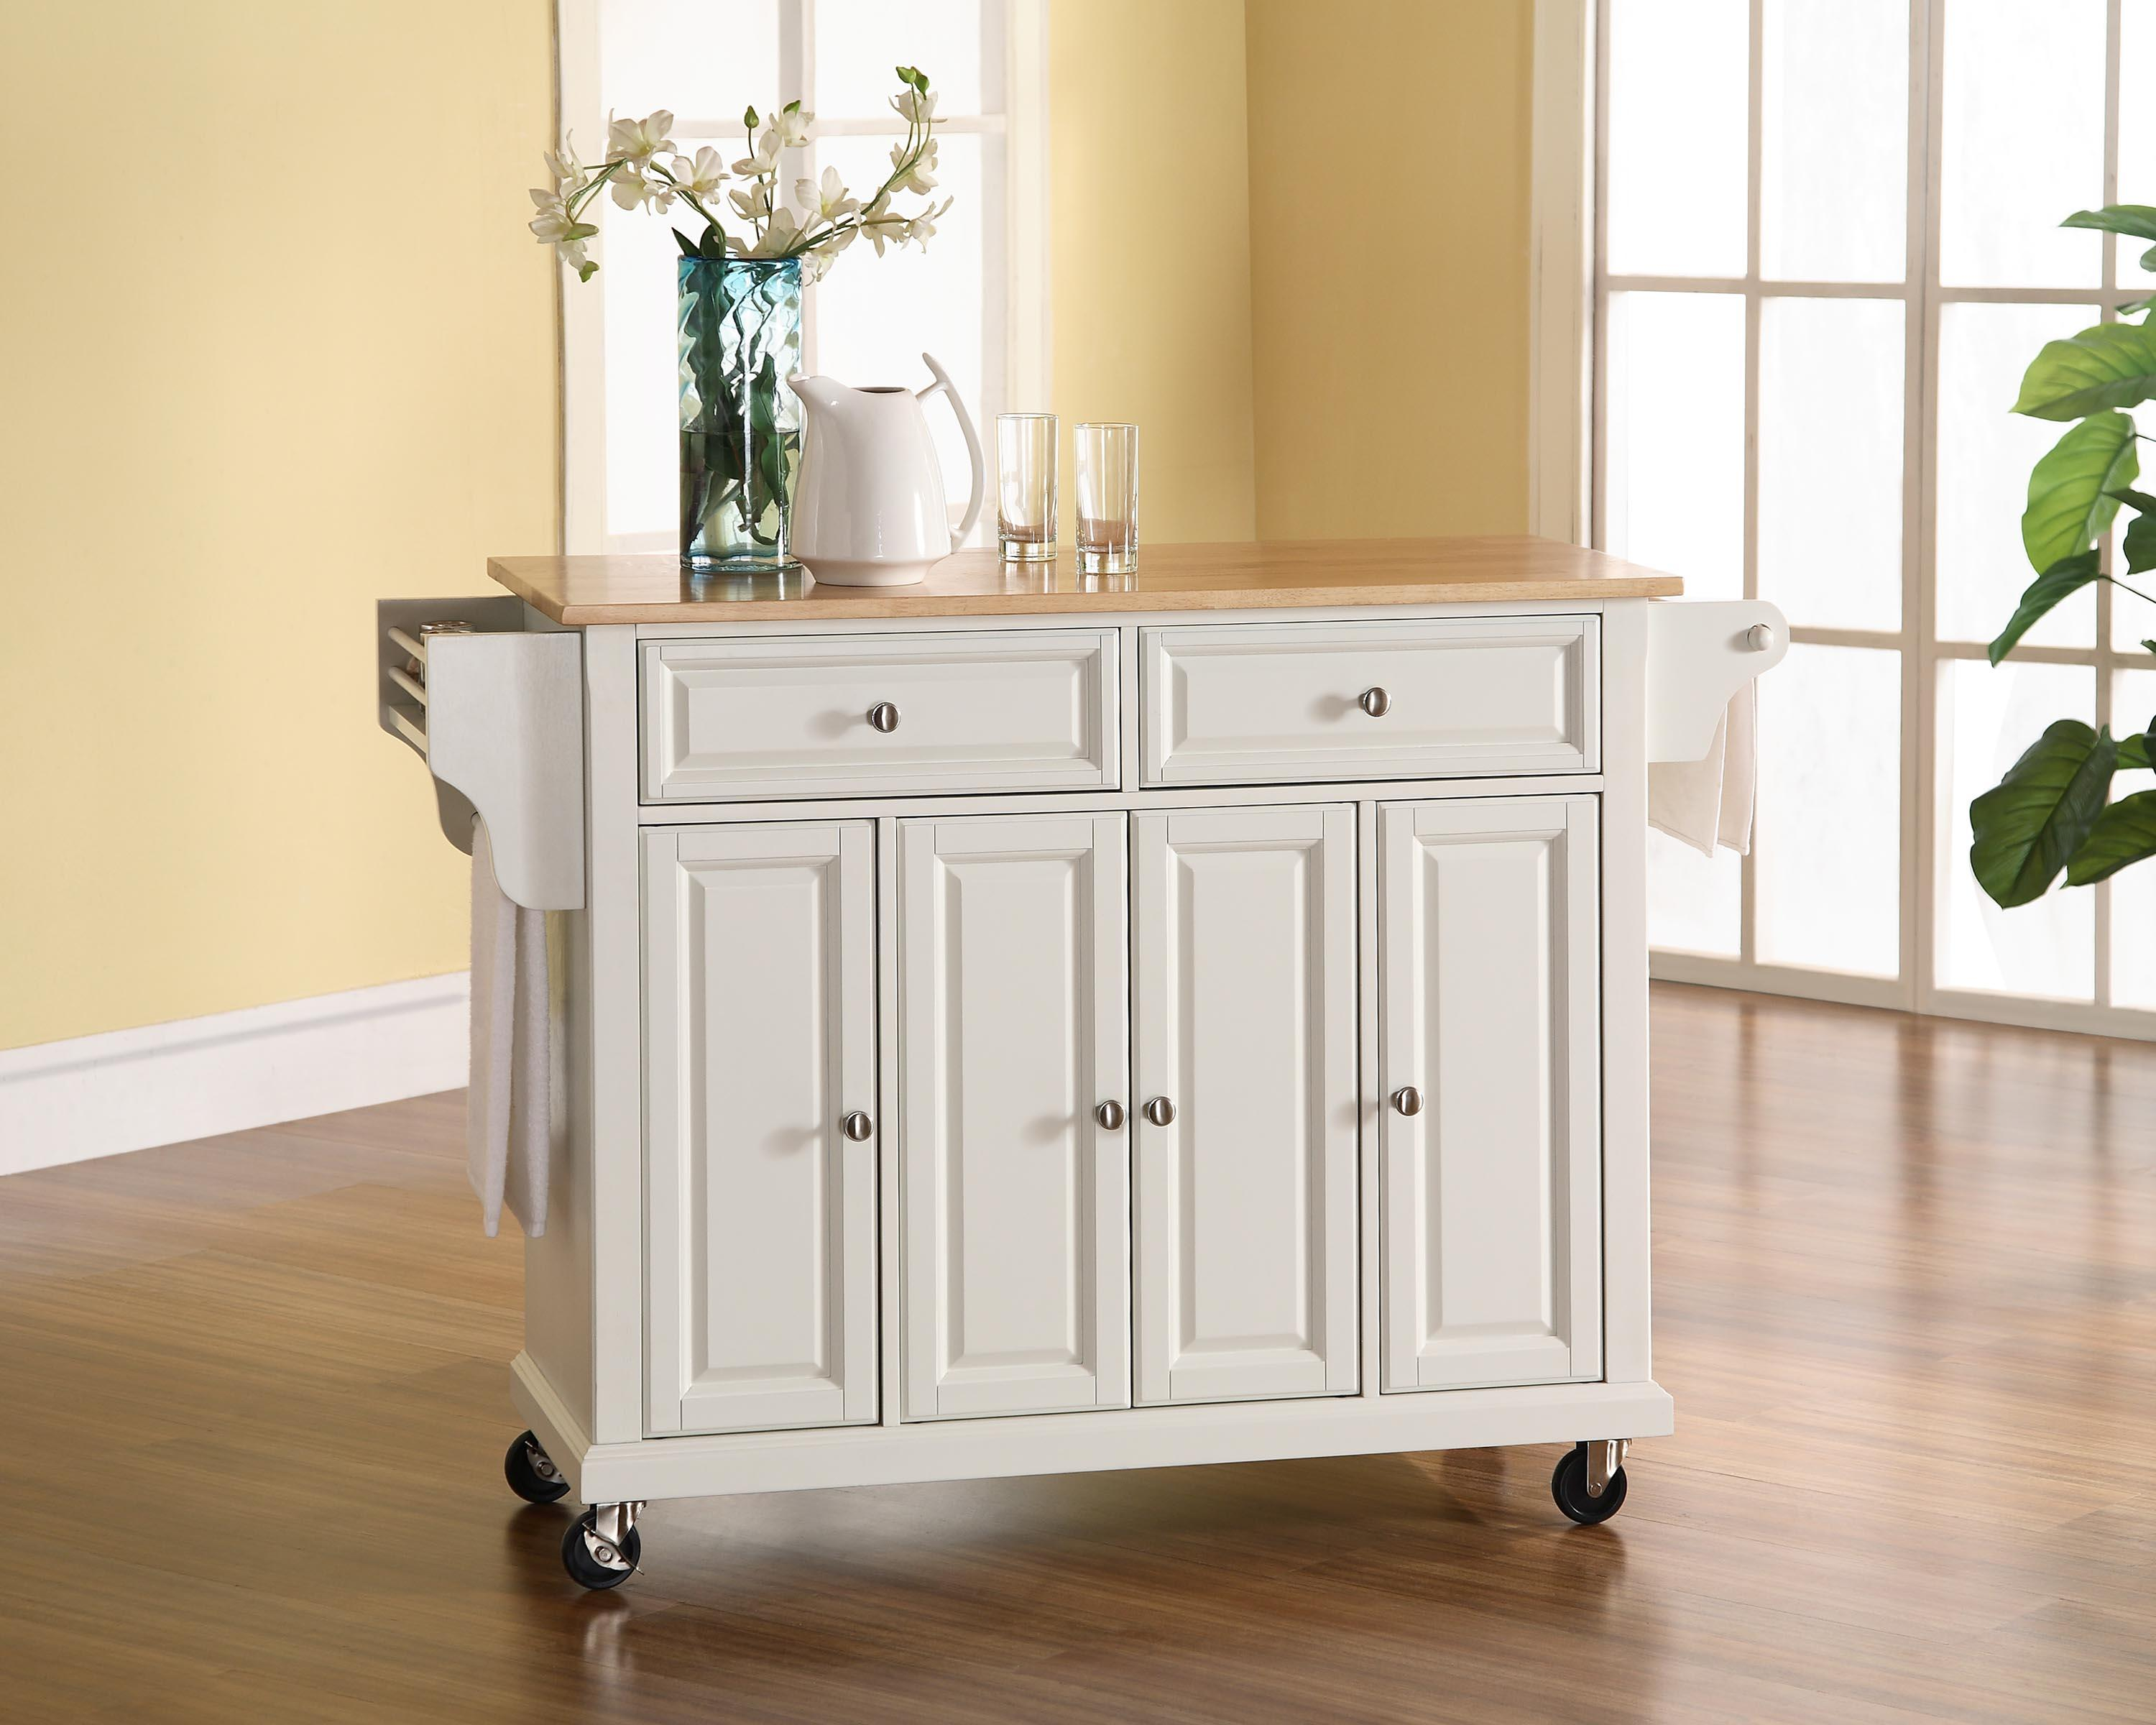 kitchen island or cart ] - shop tresanti summerville white